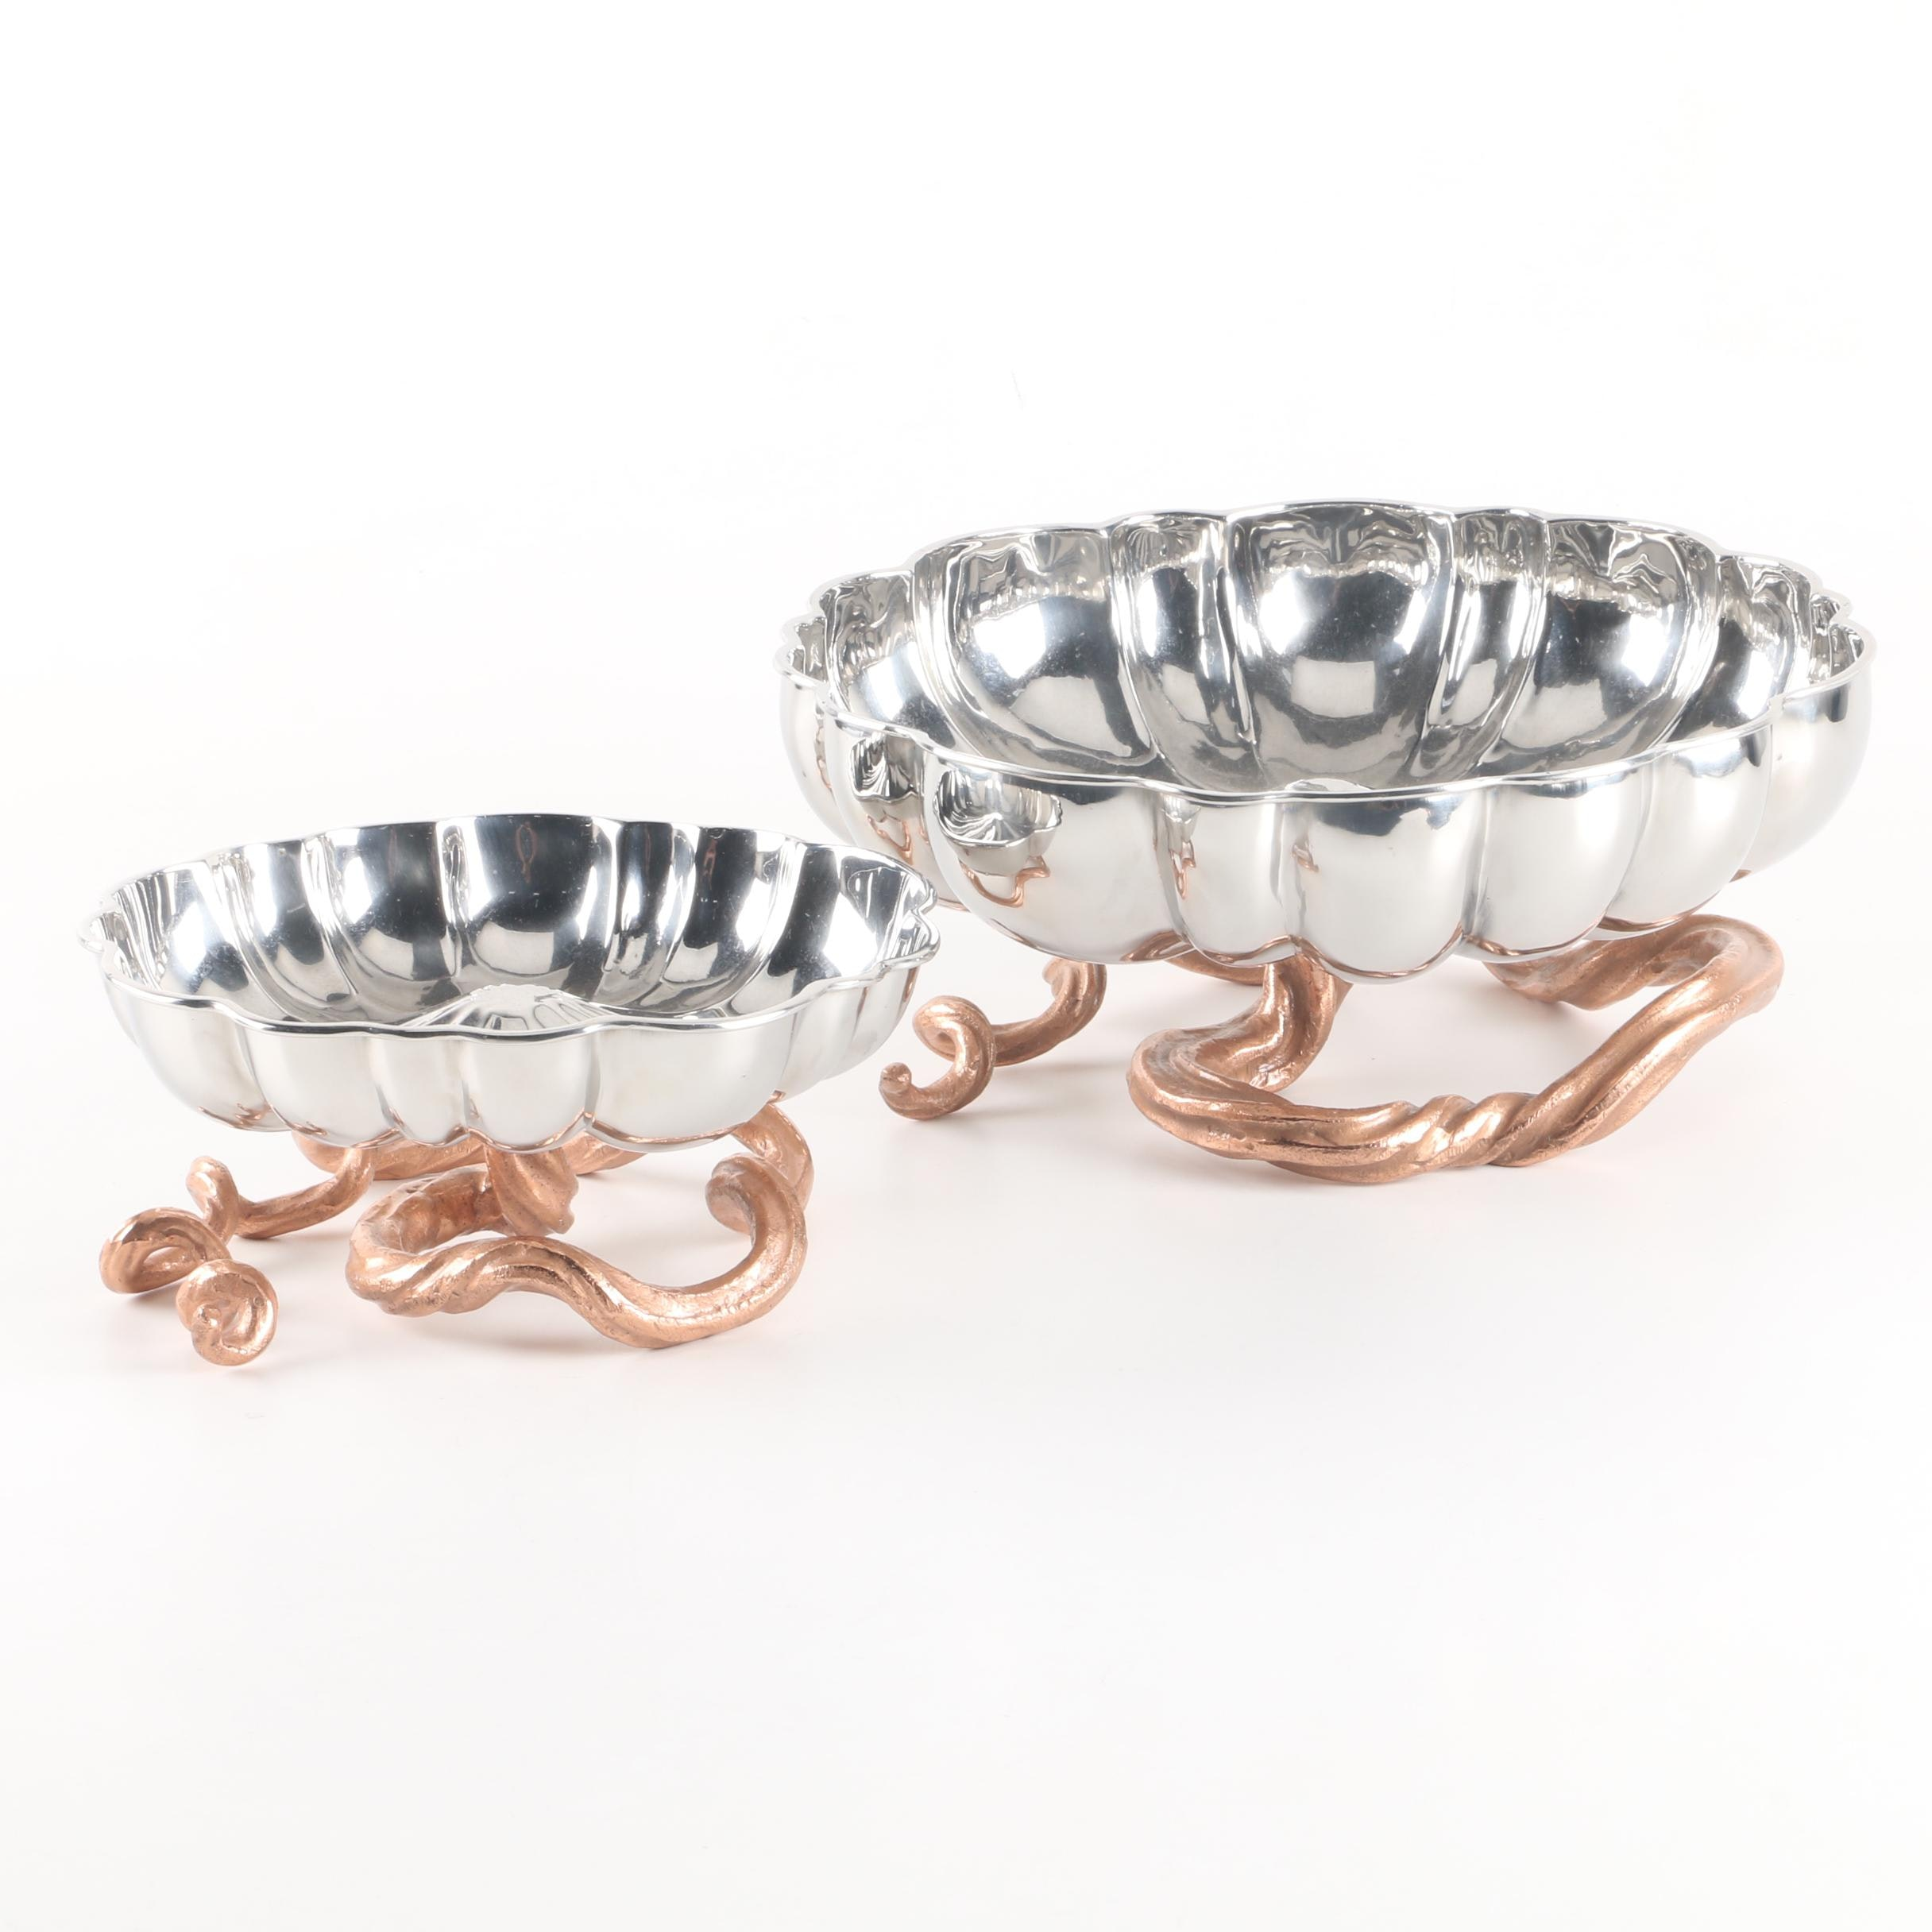 Silver-Toned Metal Gourd Bowls with Copper-Toned Vine Supports